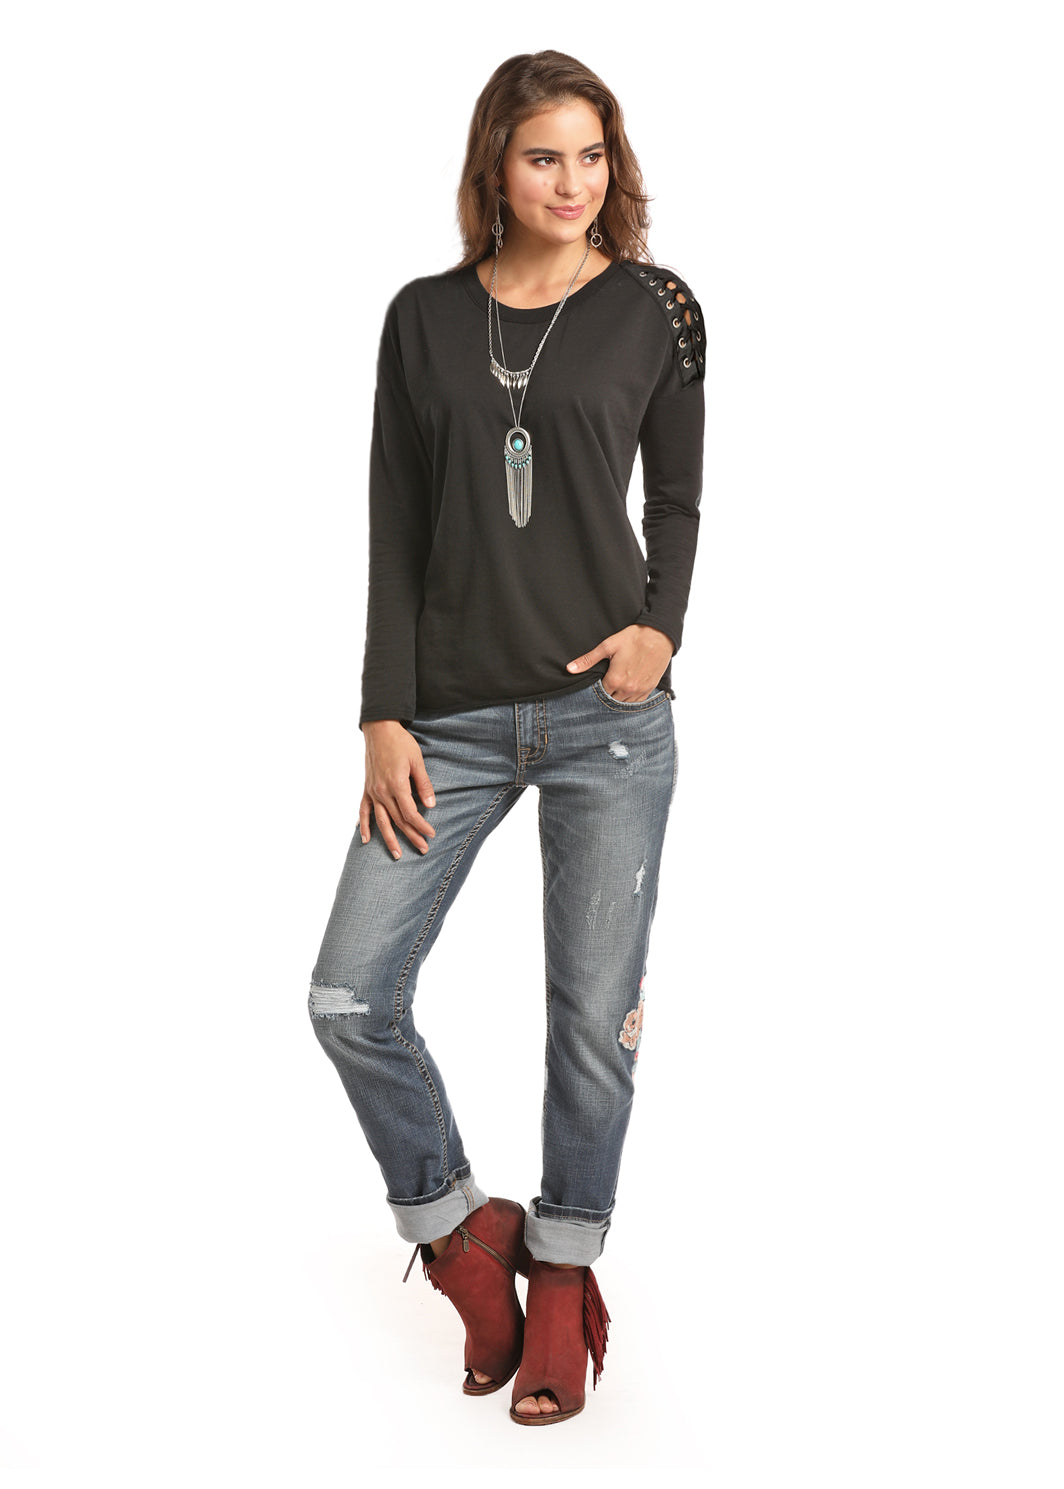 Women's Long Sleeve Top By Panhandle Slim